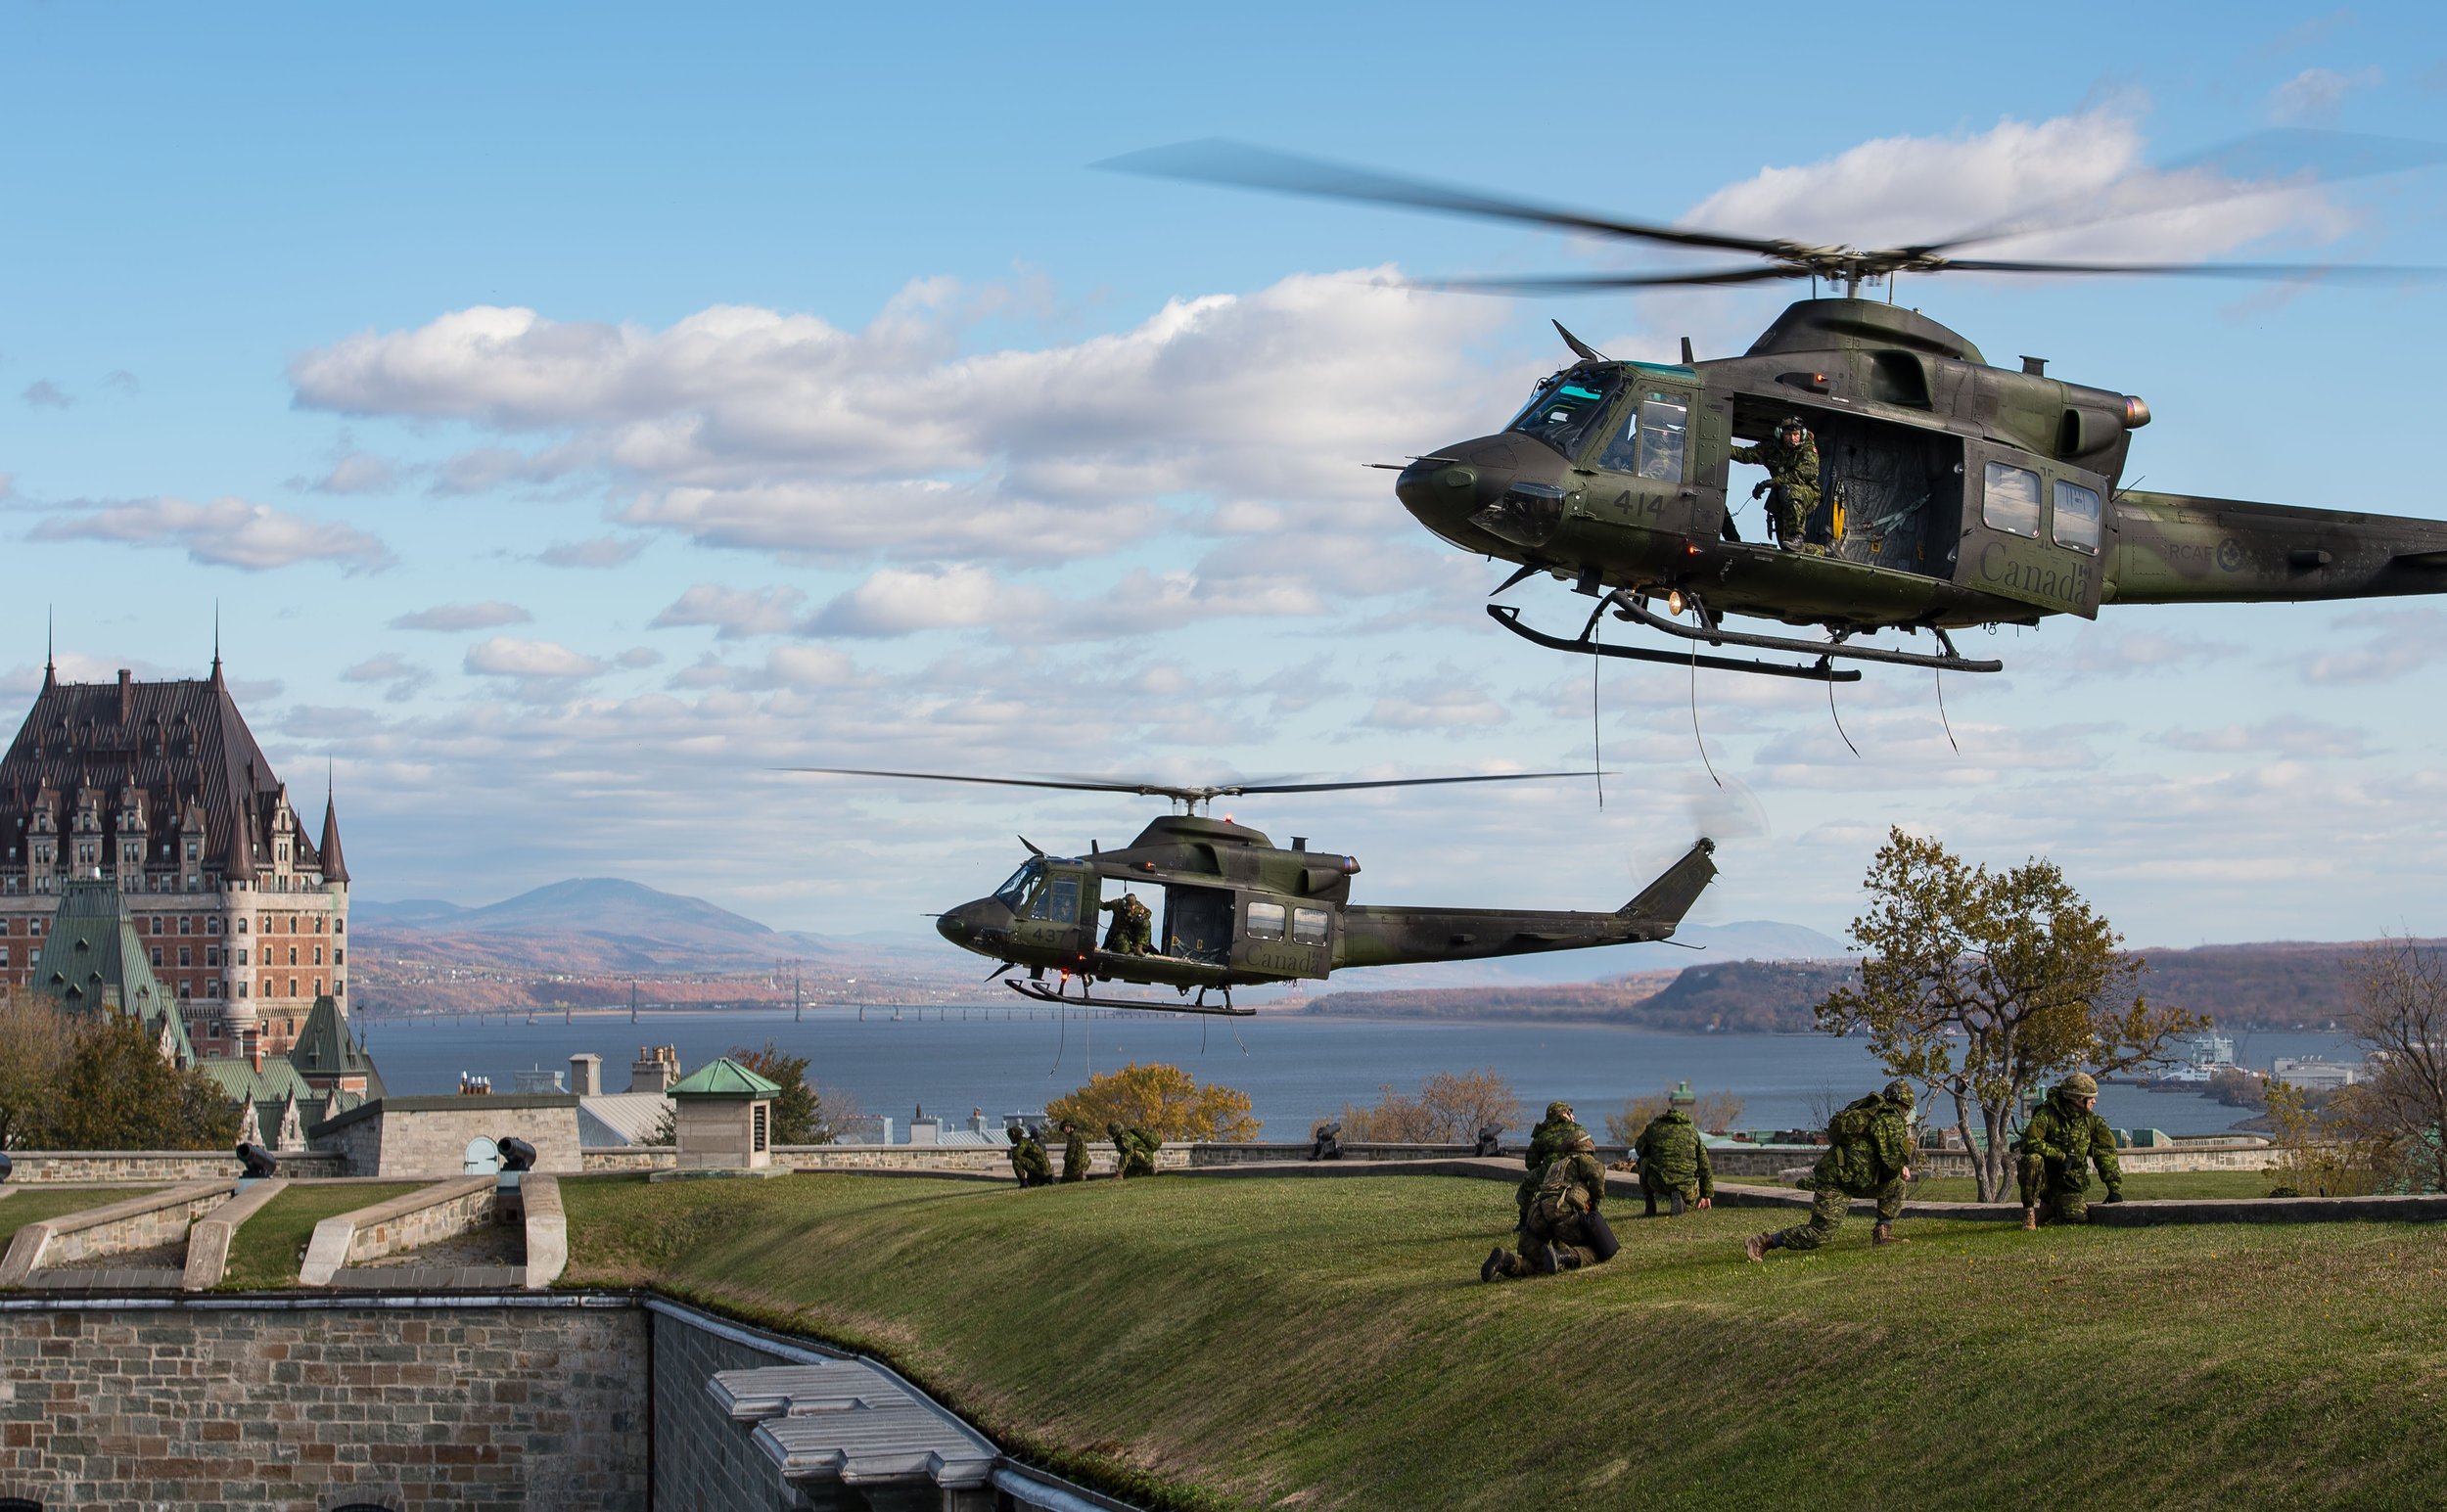 CH-146 Griffon helicopters from 430 Tactical Helicopter Squadron land at the Citadelle in Quebec City during Exercise SPARTIATE ECLAIREUR on October 20, 2017. The CH-146 Griffon is a utility tactical transport helicopter that has been in service with the CF since 1995. The Griffon's primary role is tactical transportation of troops and material, but is also used for SAR, surveillance and reconnaissance, and humanitarian relief operations. (sgt marc-andré gaudreault, valcartier imagery services)